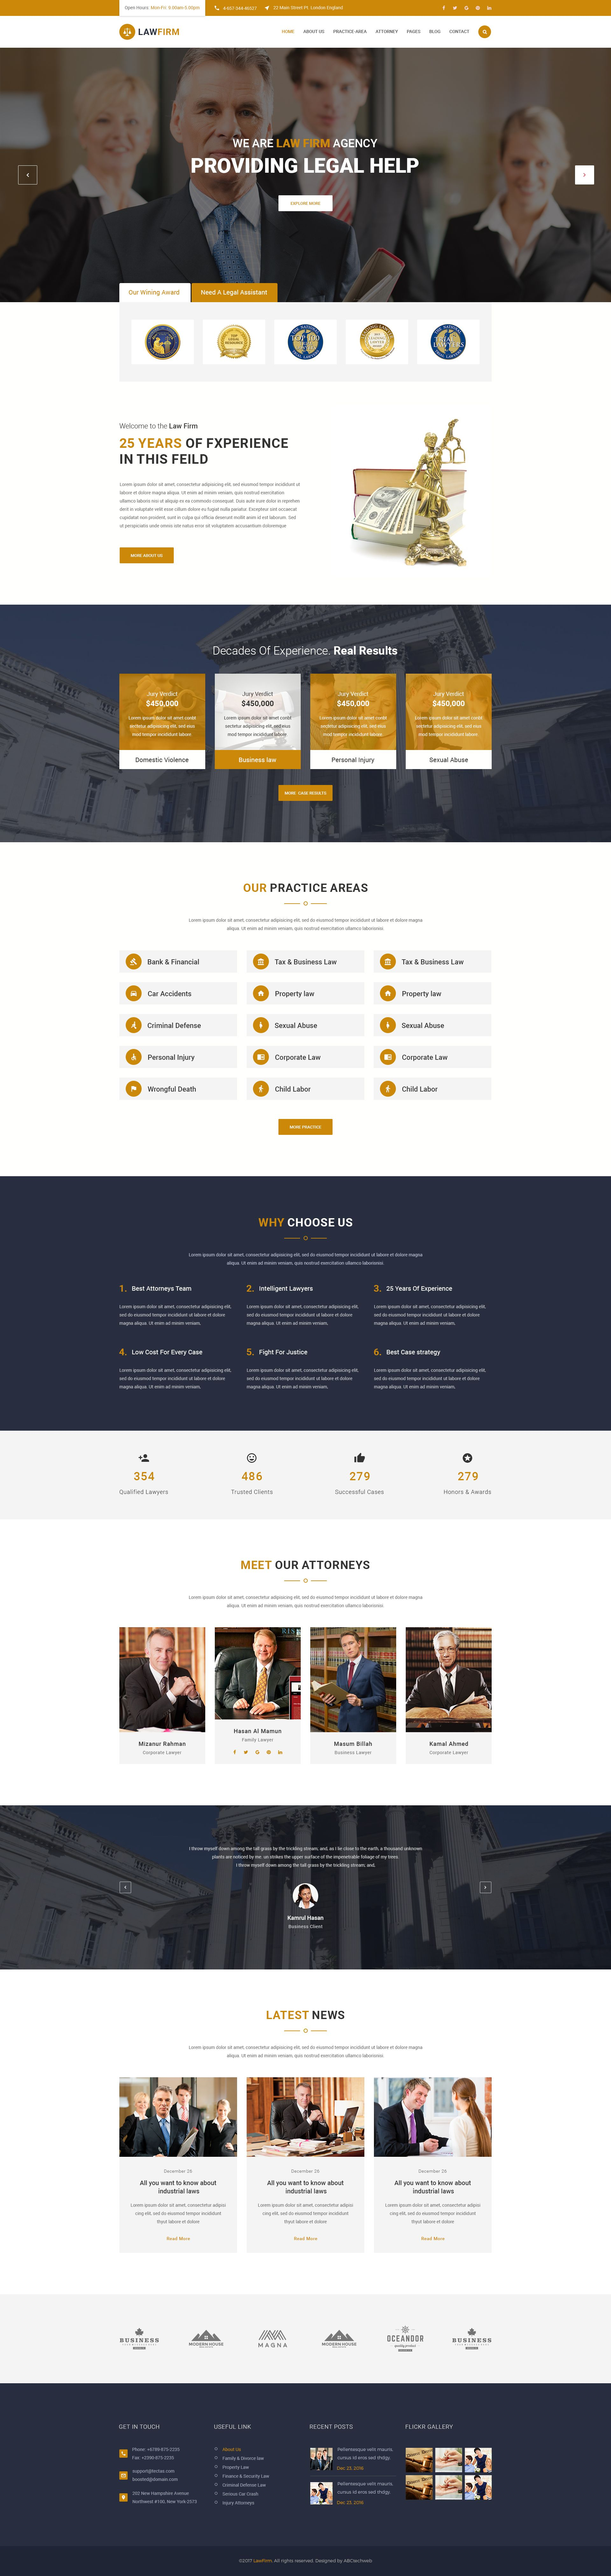 LawFirm- Injury, Traffic Ticket, Wealth Planning, Defense, Construction & Insurance PSD Template #insurance law #justice #law • Download ➝ https://themeforest.net/item/lawfirm-injury-traffic-ticket-wealth-planning-defense-construction-insurance-psd-template/19738419?ref=pxcr